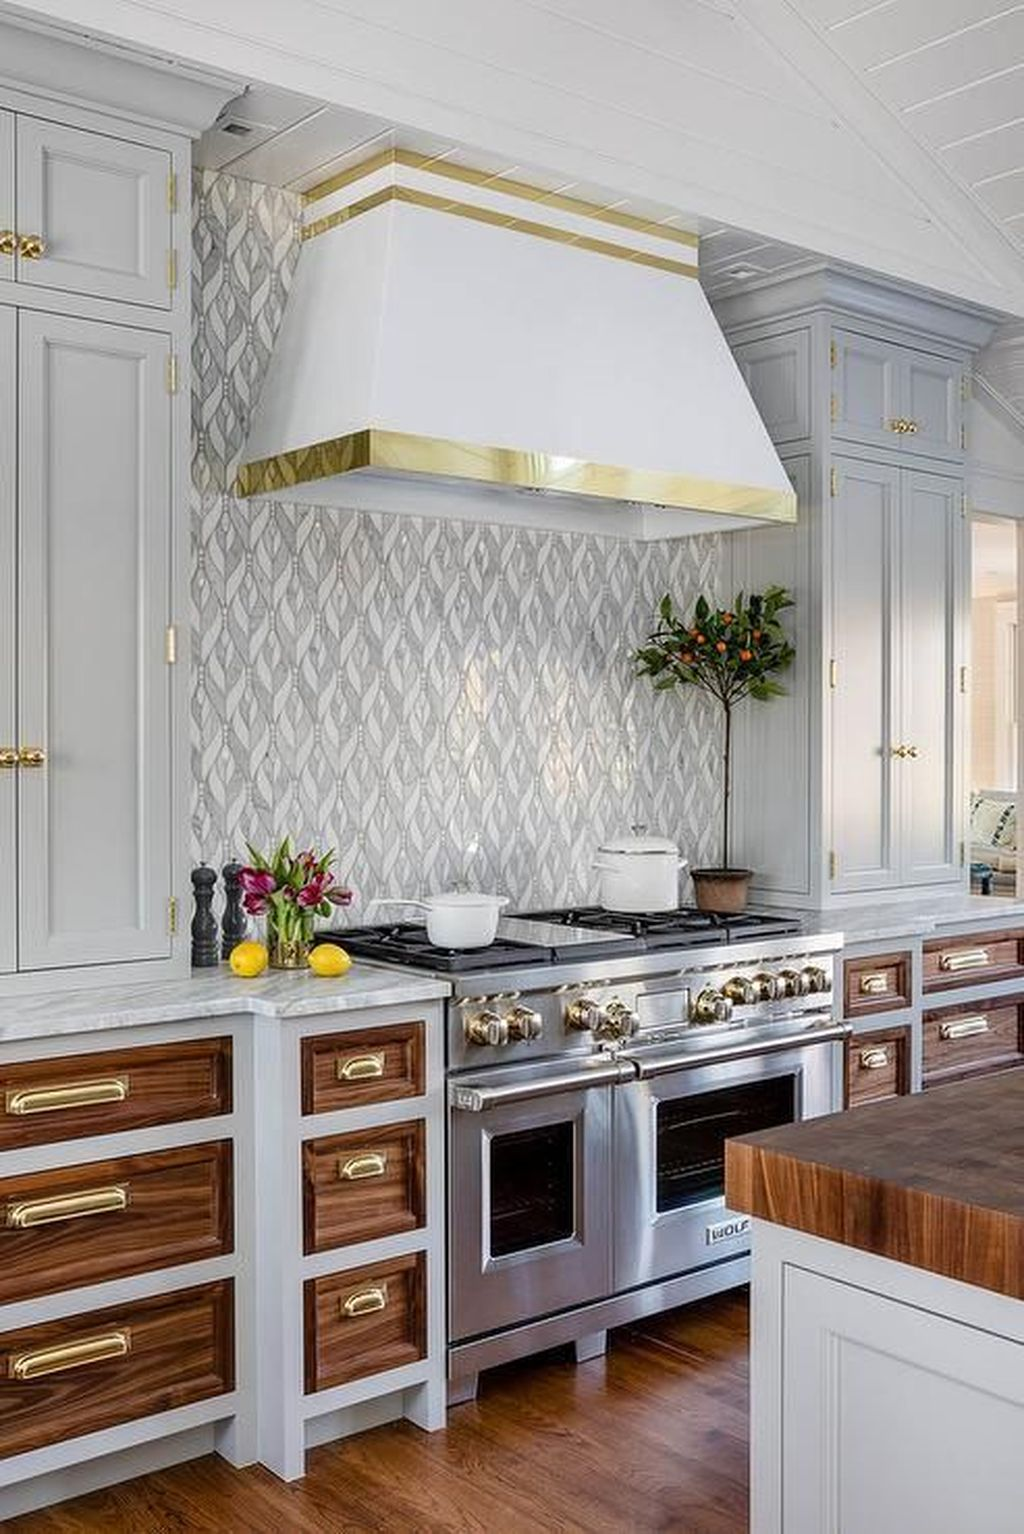 Lovely Luxury Kitchen Design Ideas You Never Seen Before 05